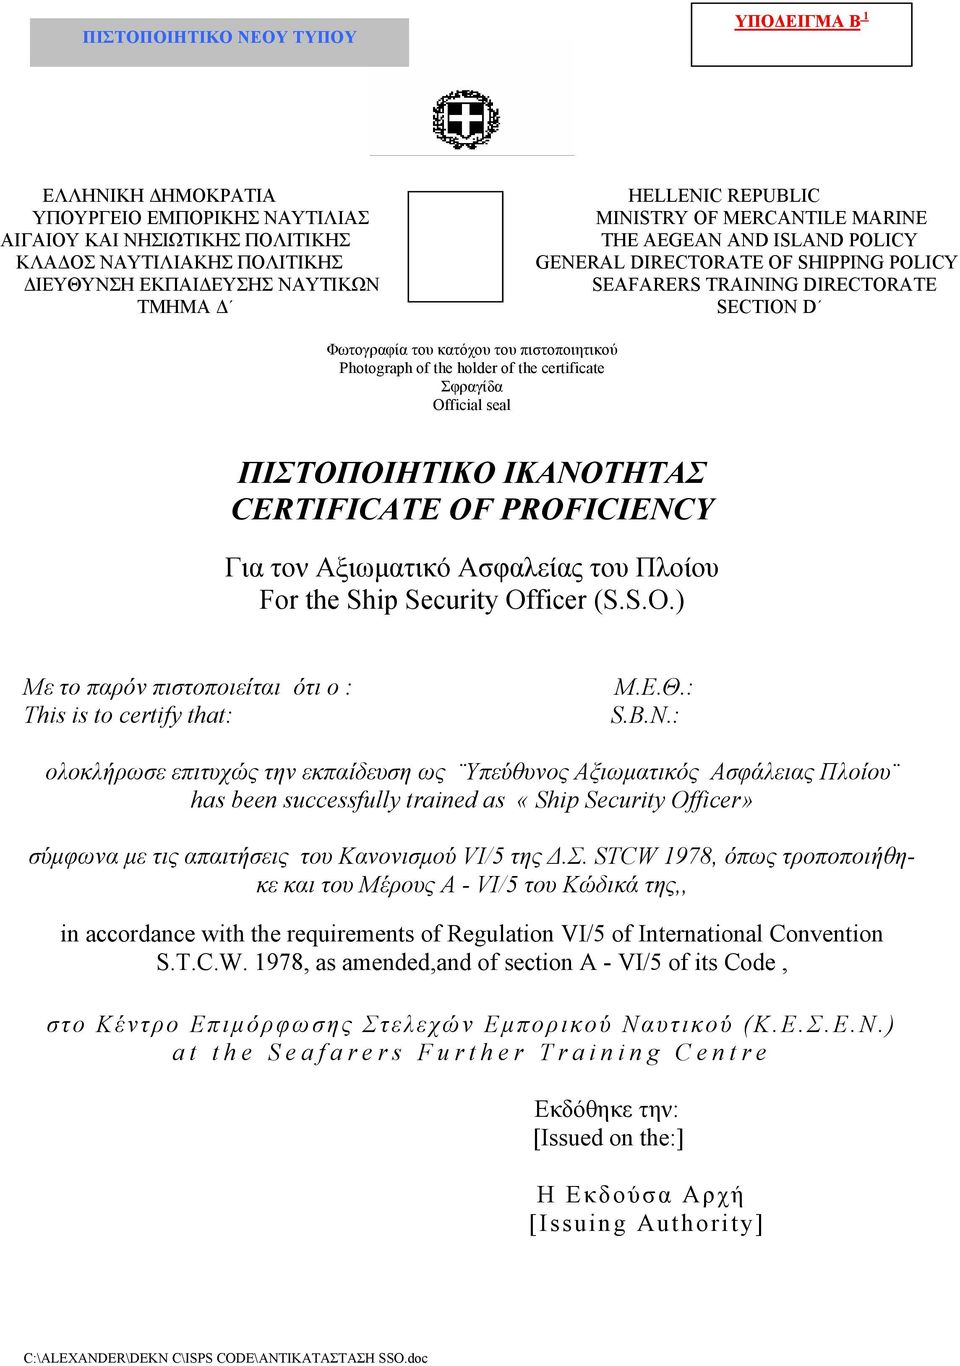 Photograph of the holder of the certificate Σφραγίδα Official seal ΠΙΣΤΟΠΟΙΗΤΙΚΟ ΙΚΑΝΟΤΗΤΑΣ CERTIFICATE OF PROFICIENCY Για τον Αξιωµατικό Ασφαλείας του Πλοίου For the Ship Security Officer (S.S.O.) Με το παρόν πιστοποιείται ότι ο : This is to certify that: Μ.